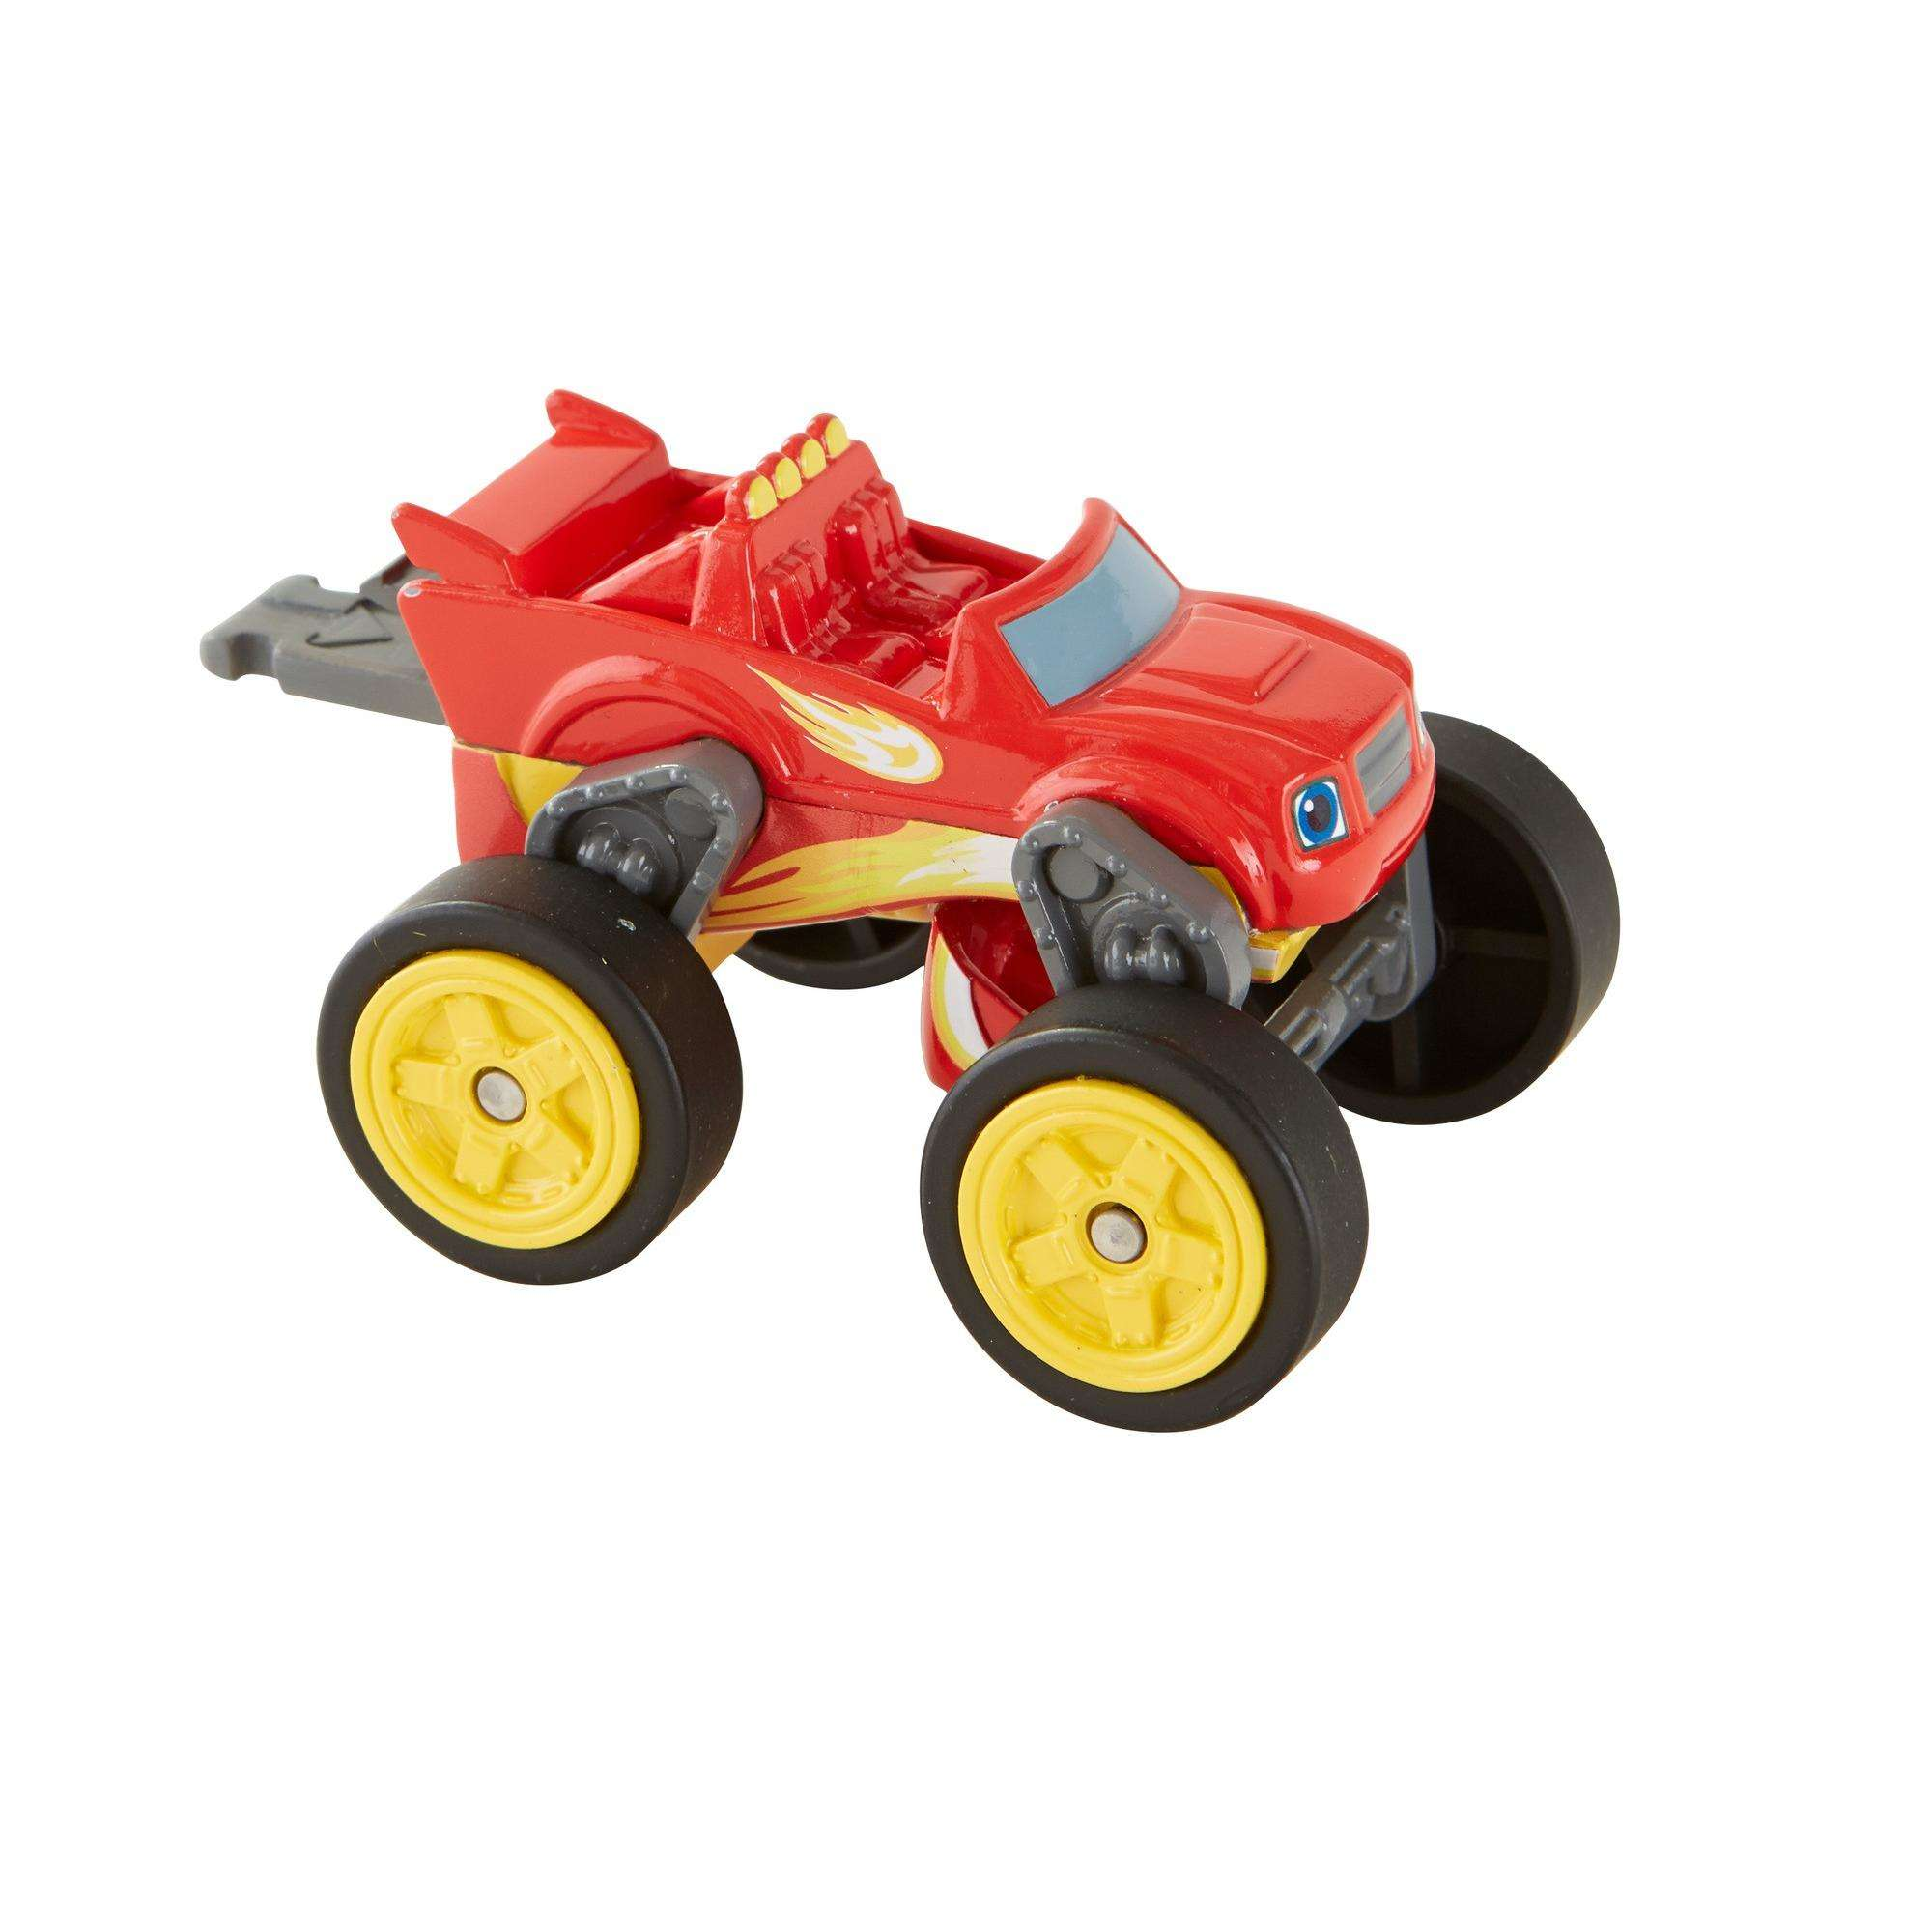 Nickelodeon Blaze and the Monster Machines Flip and Race Blaze by FISHER PRICE